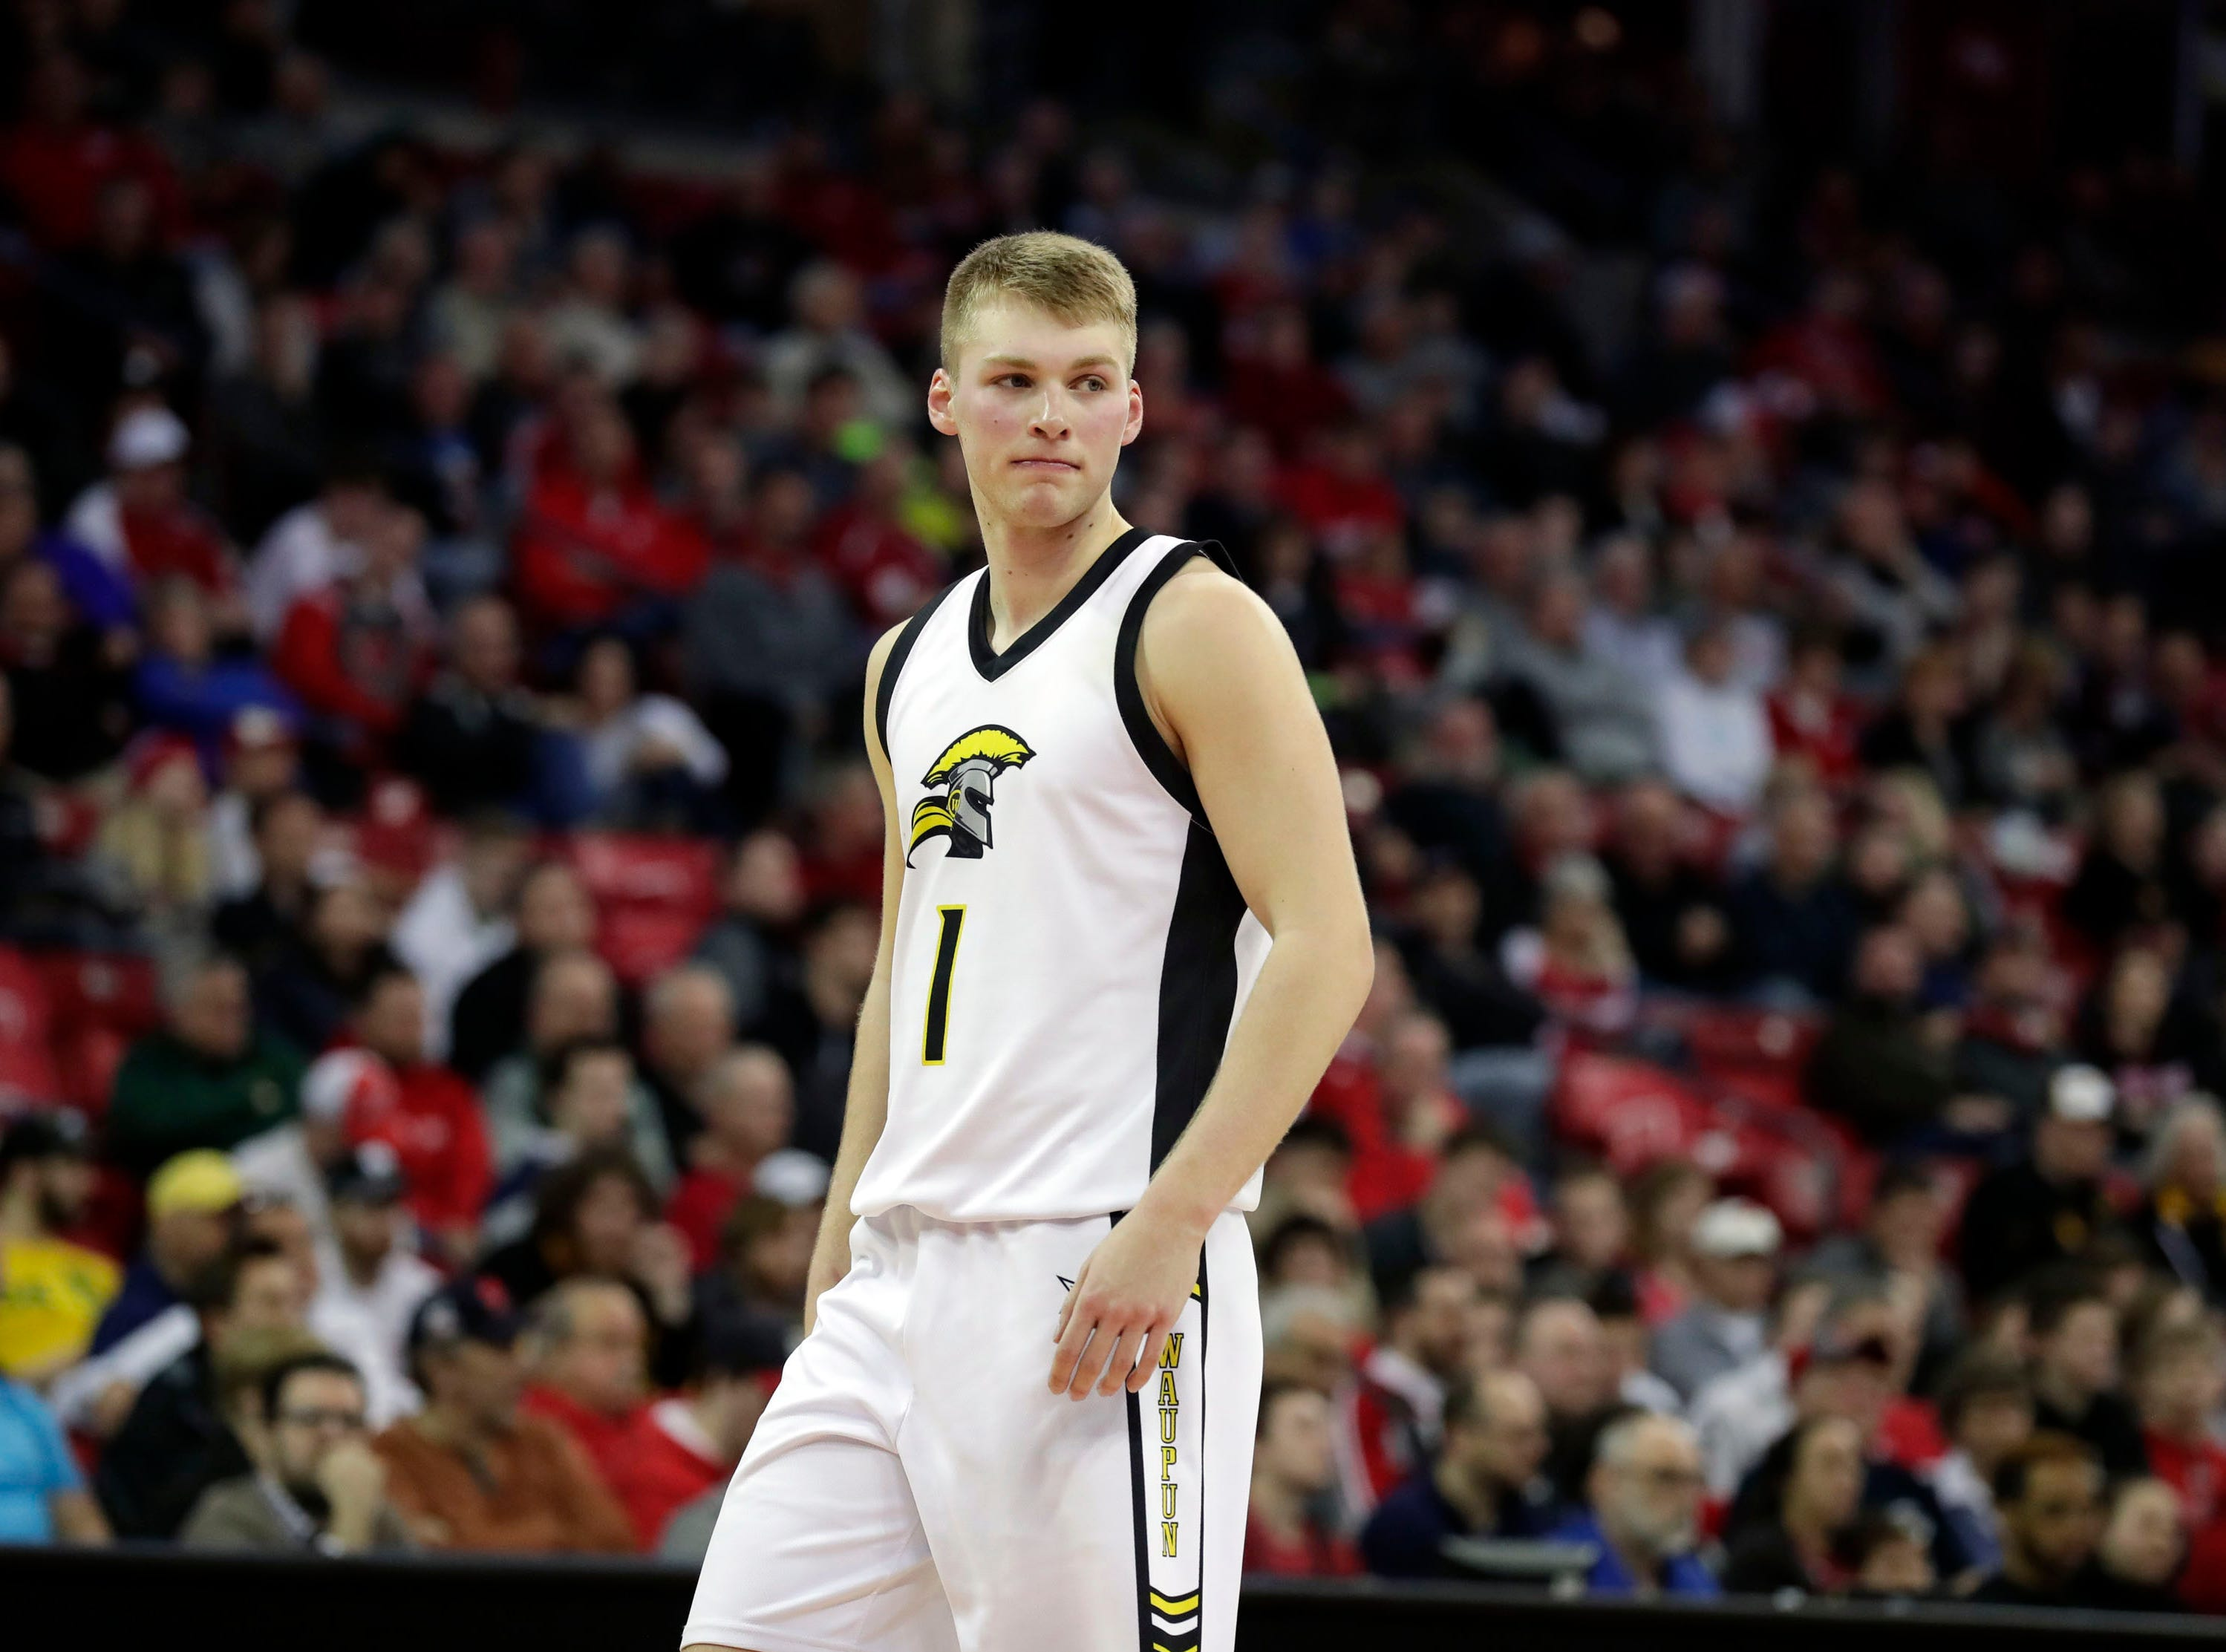 Waupun senior Marcus Domask, who was named Mr. Basketball in Wisconsin on Saturday by the state coaches association, sees a state title elude him Saturday.